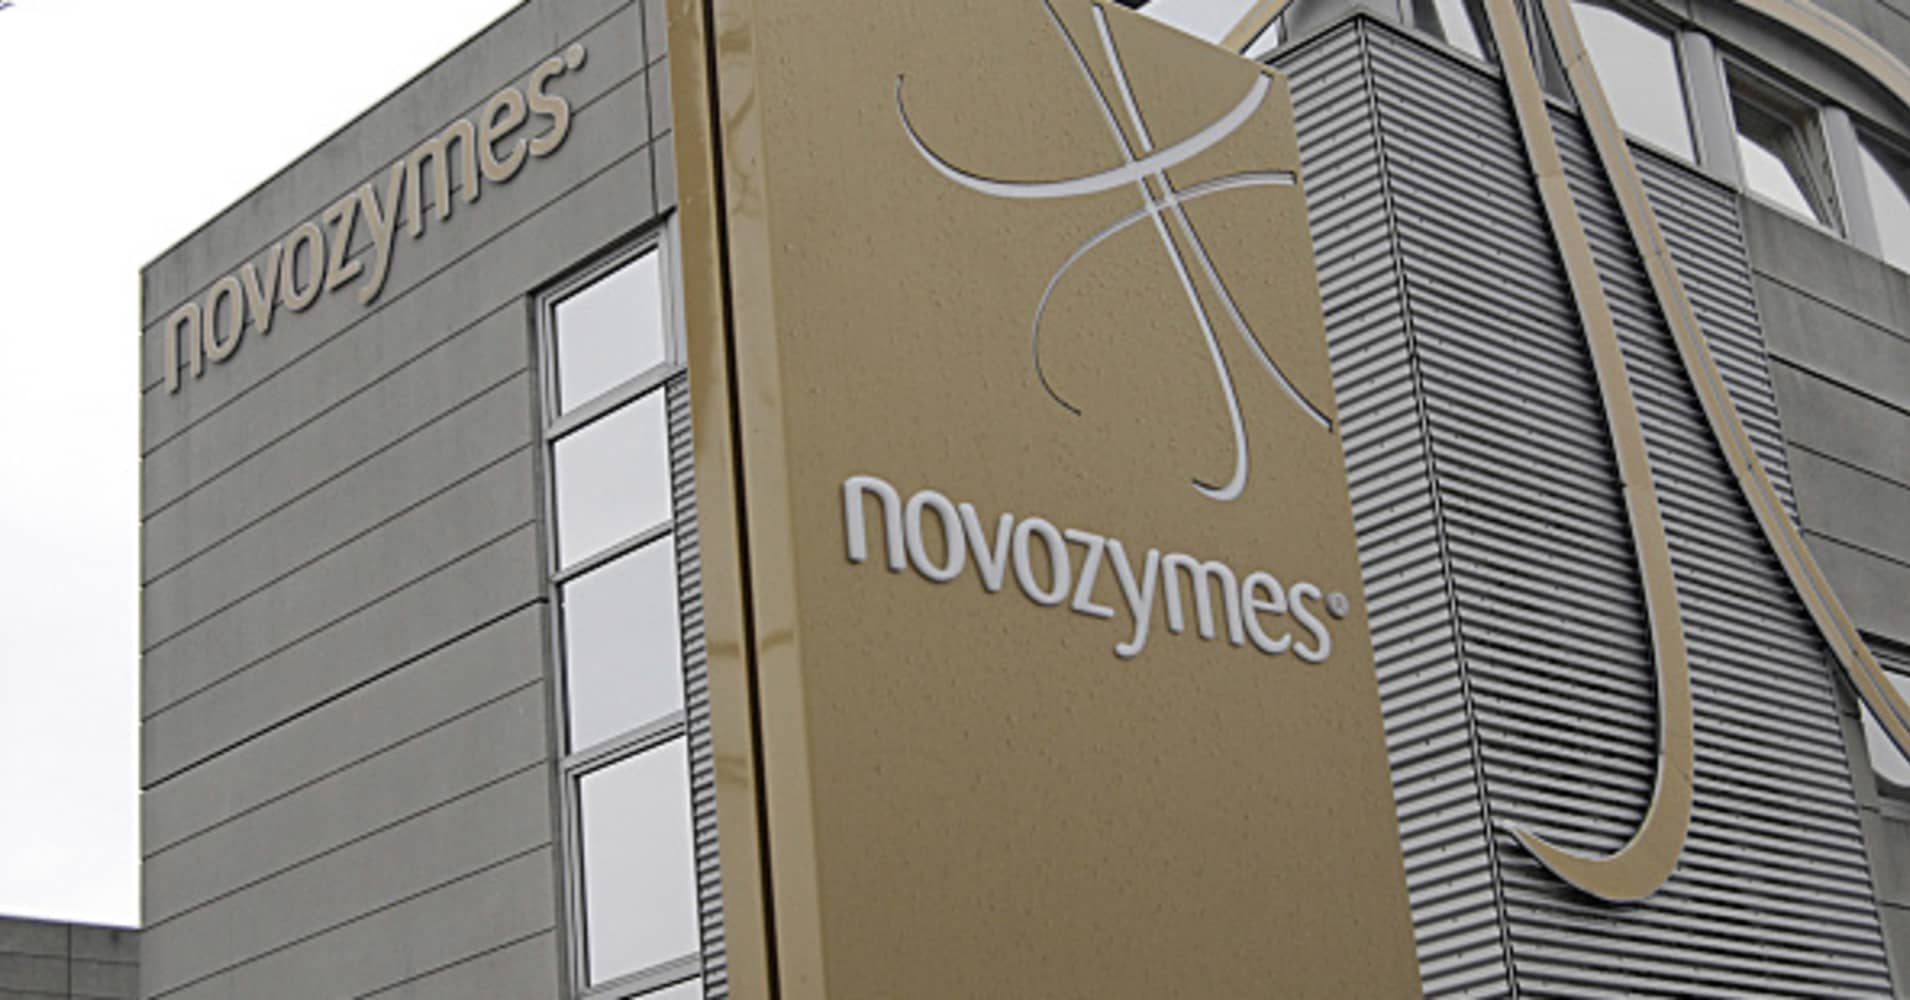 Biotech firm Novozymes sinks 3% after earnings miss